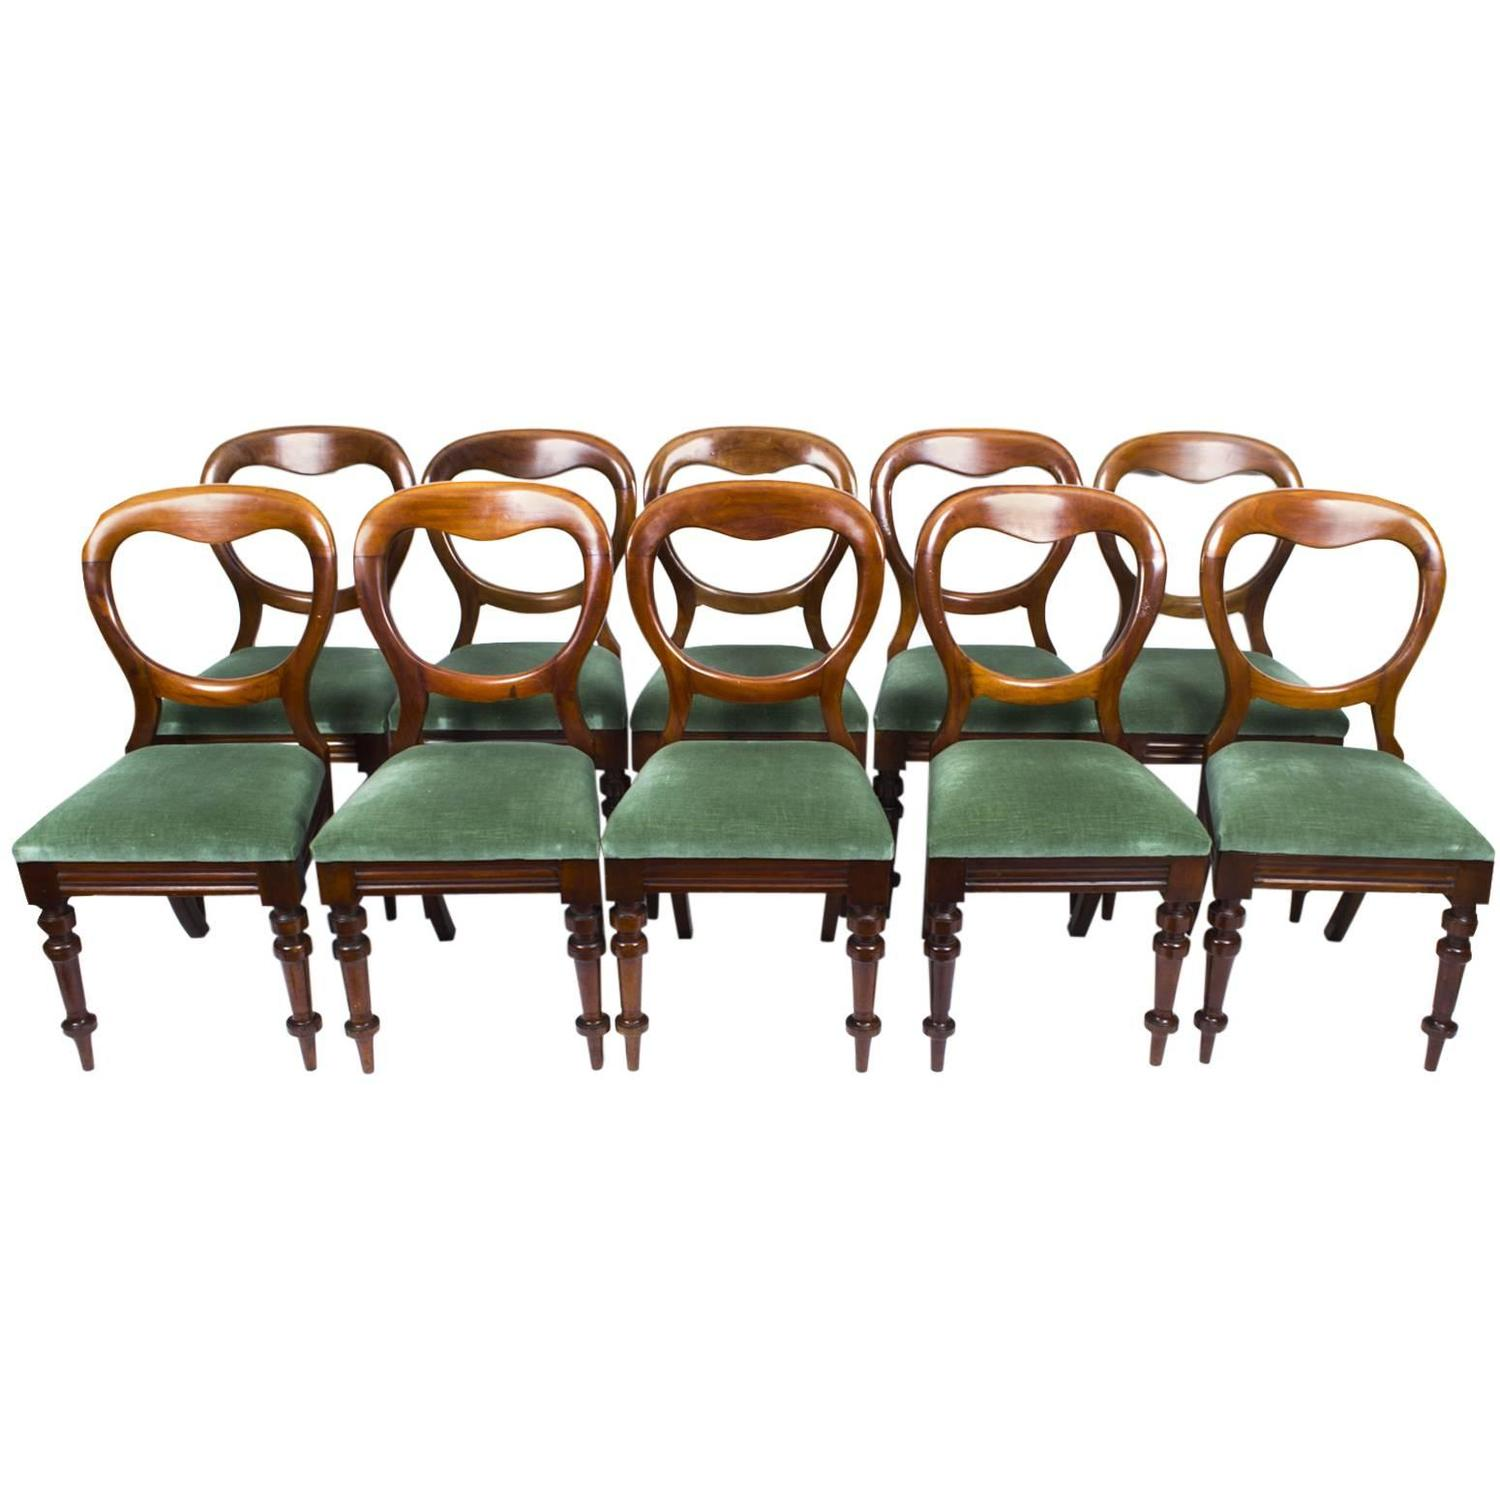 Antique Set Of Ten Victorian Balloon Back Dining Chairs, Circa 1880 At  1stdibs